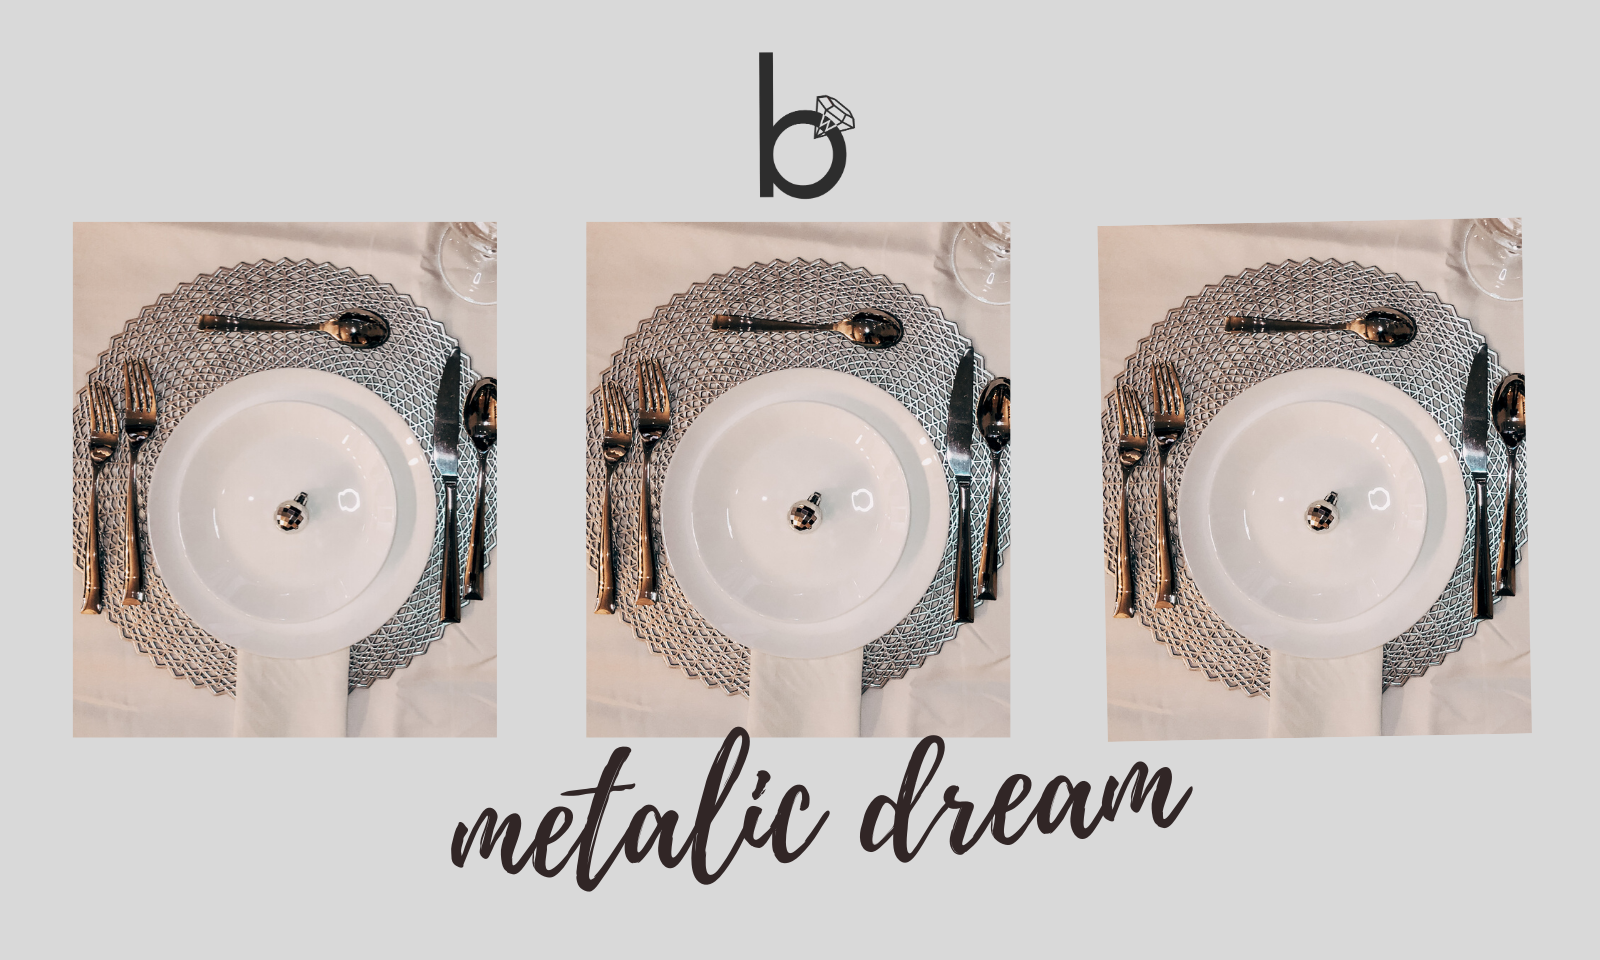 Metalic Dream - Table Setting